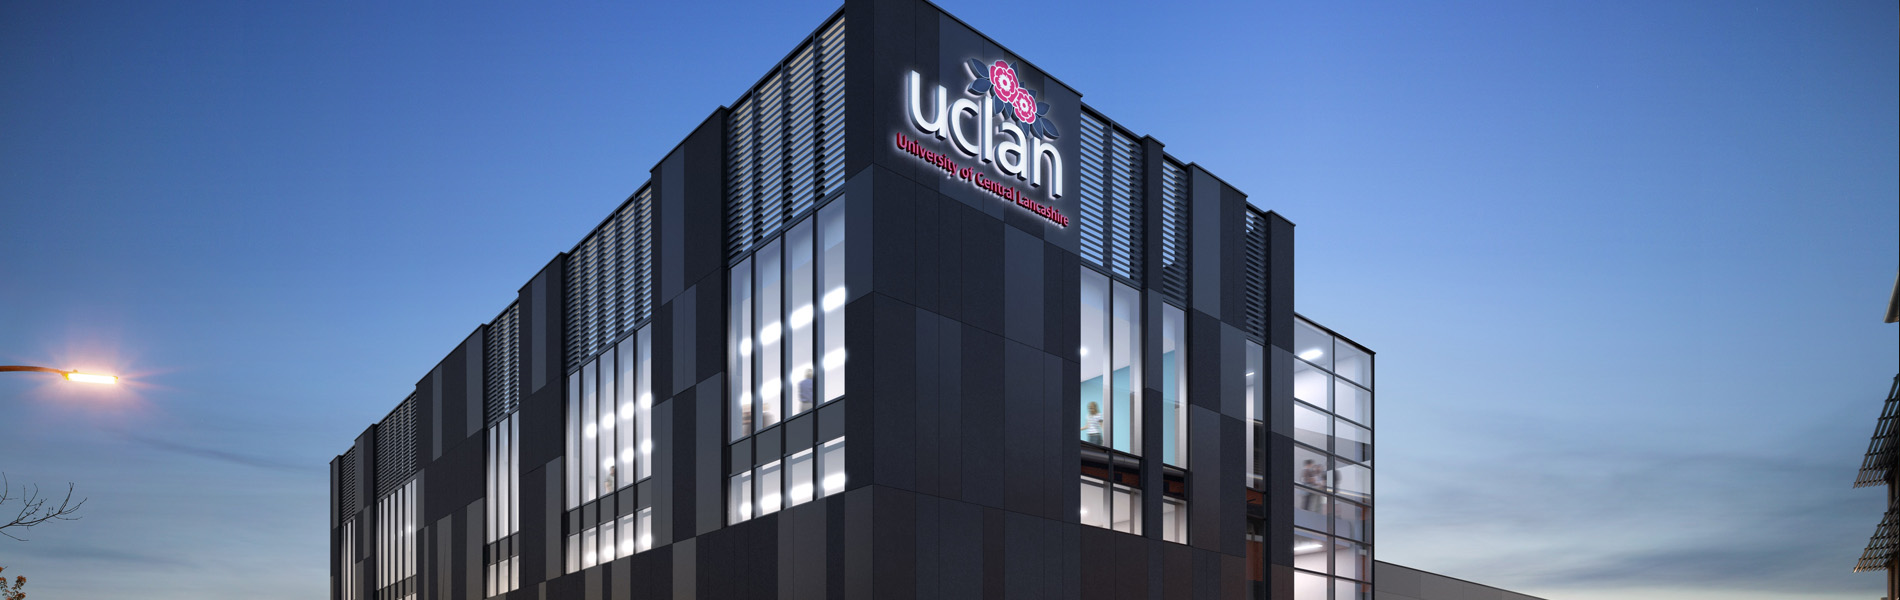 University of Central Lancashire (UCLan) see the benefits of consistent data with help from Simpson Associates